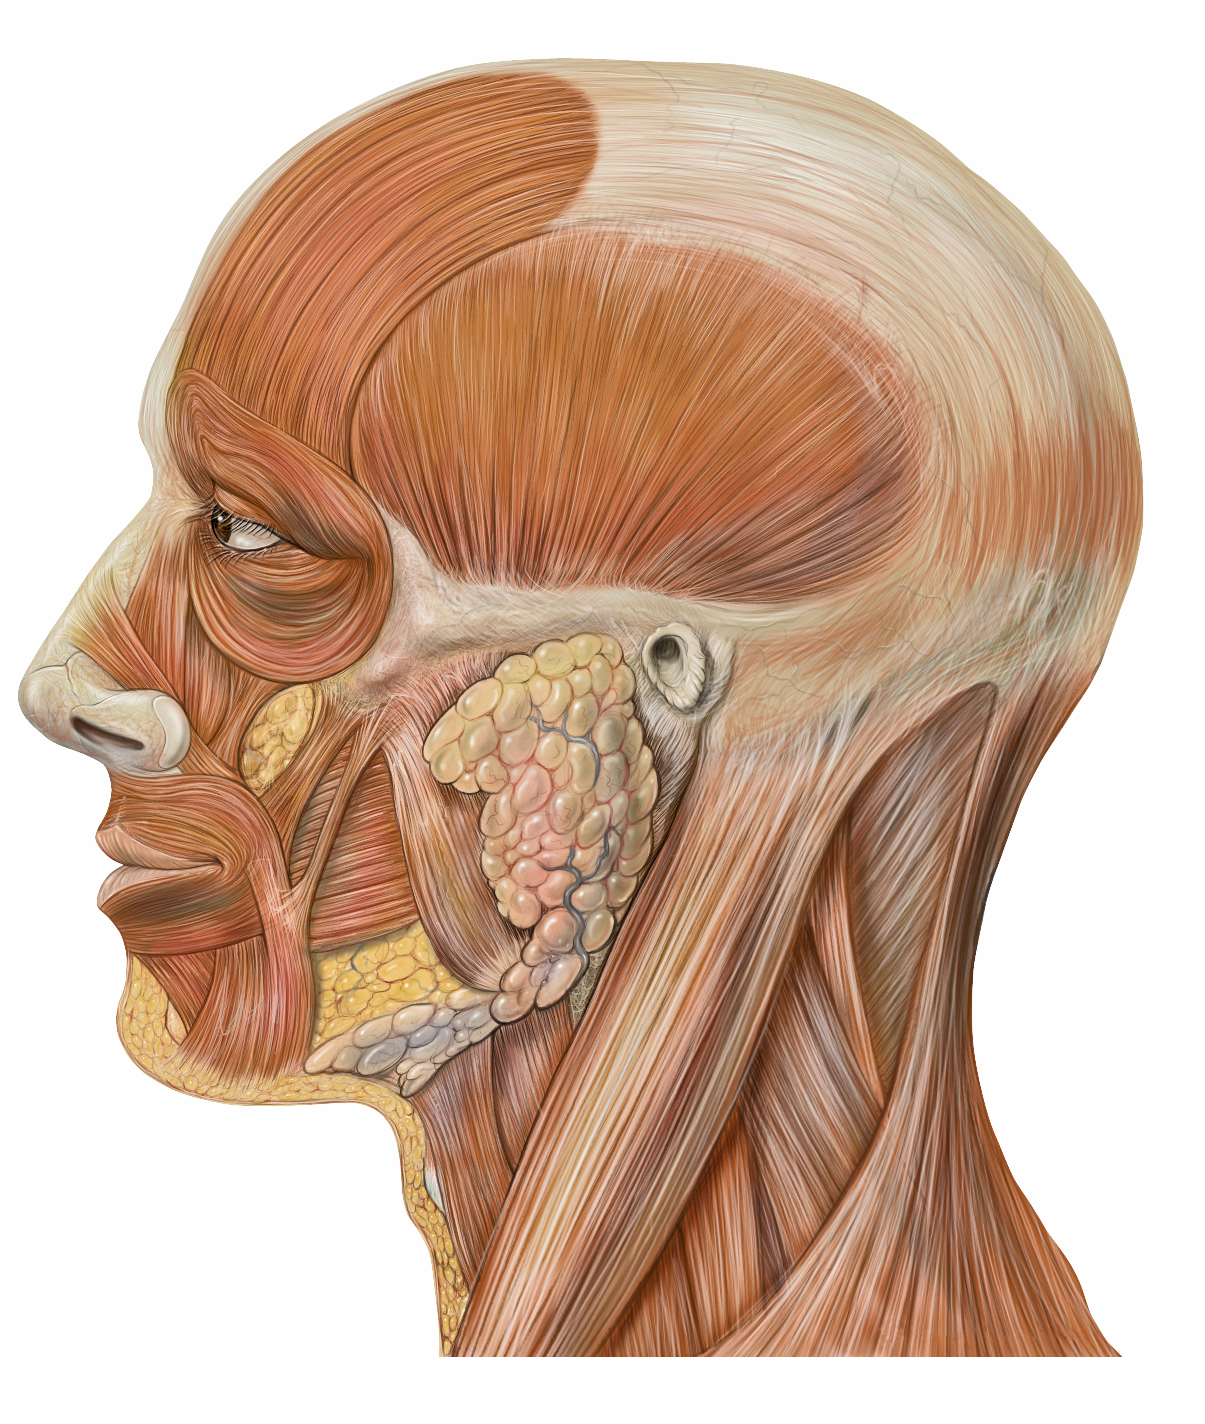 Facial Muscles Quiz